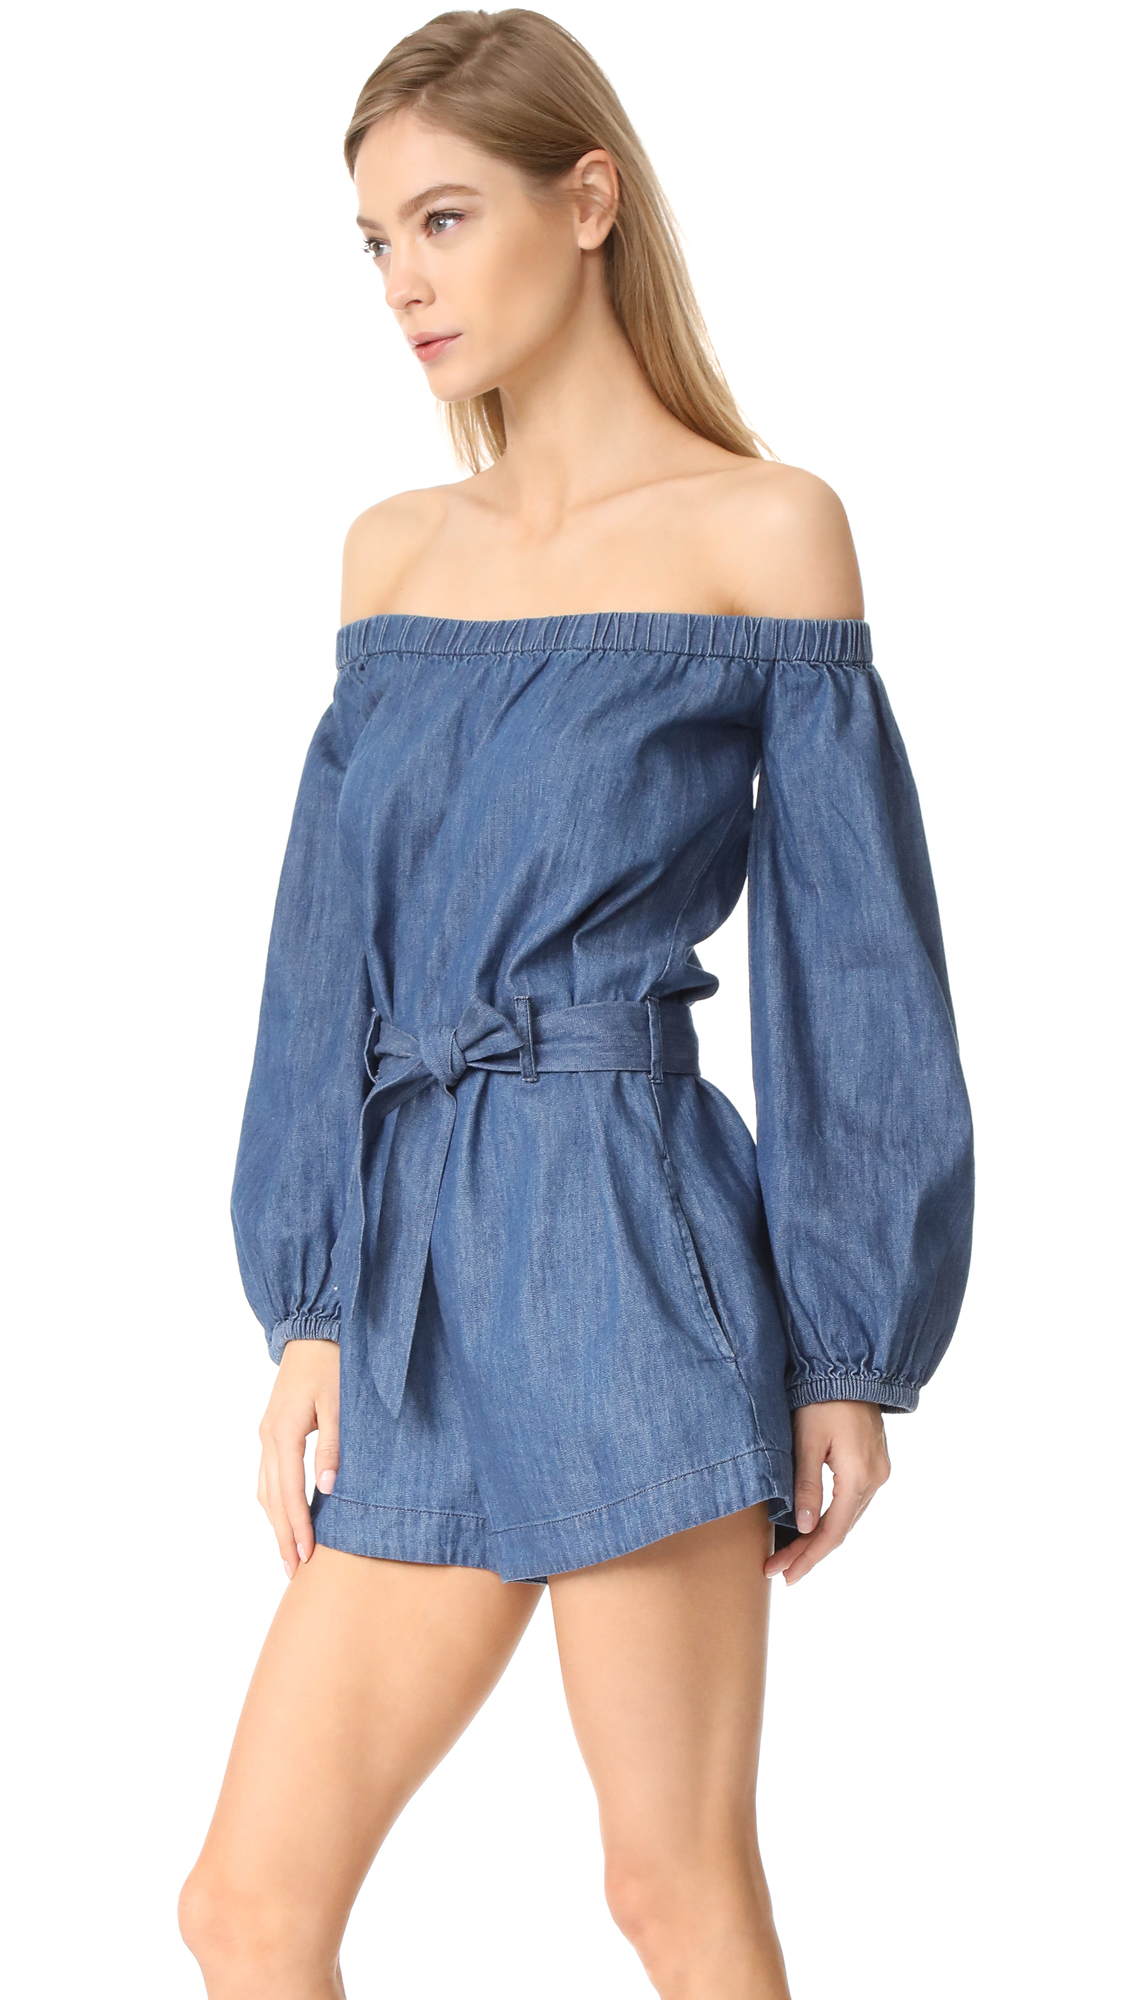 c70d9c44719 Free People Tangled In Willows Romper